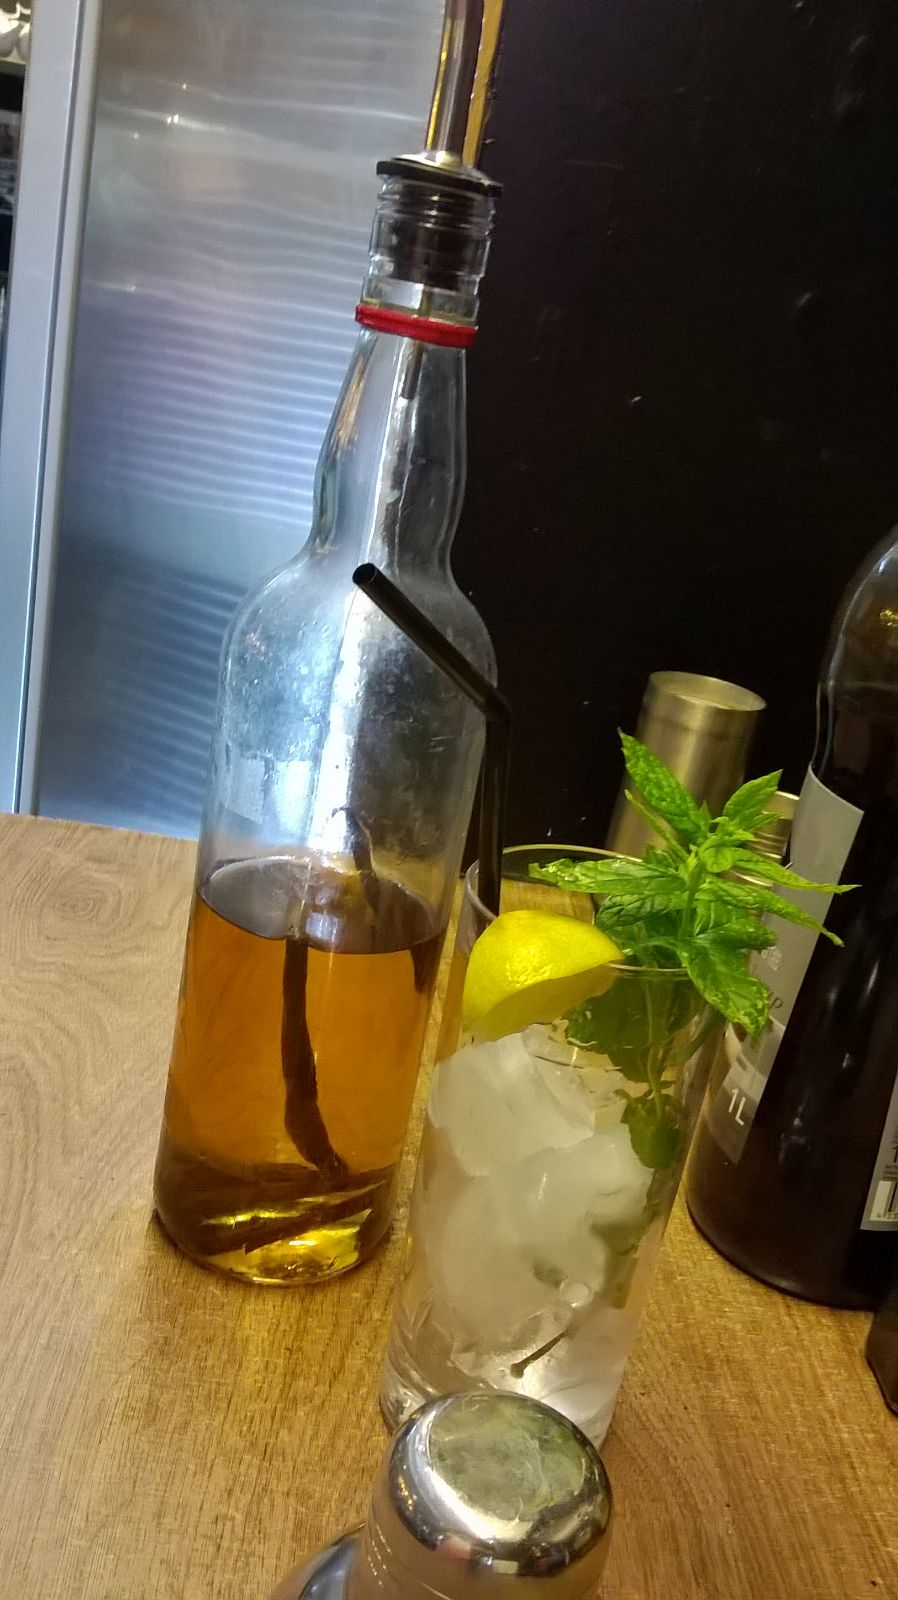 Craft Infused Spirits - In house crafted spirits with fruit and berries grown in our own back garden.